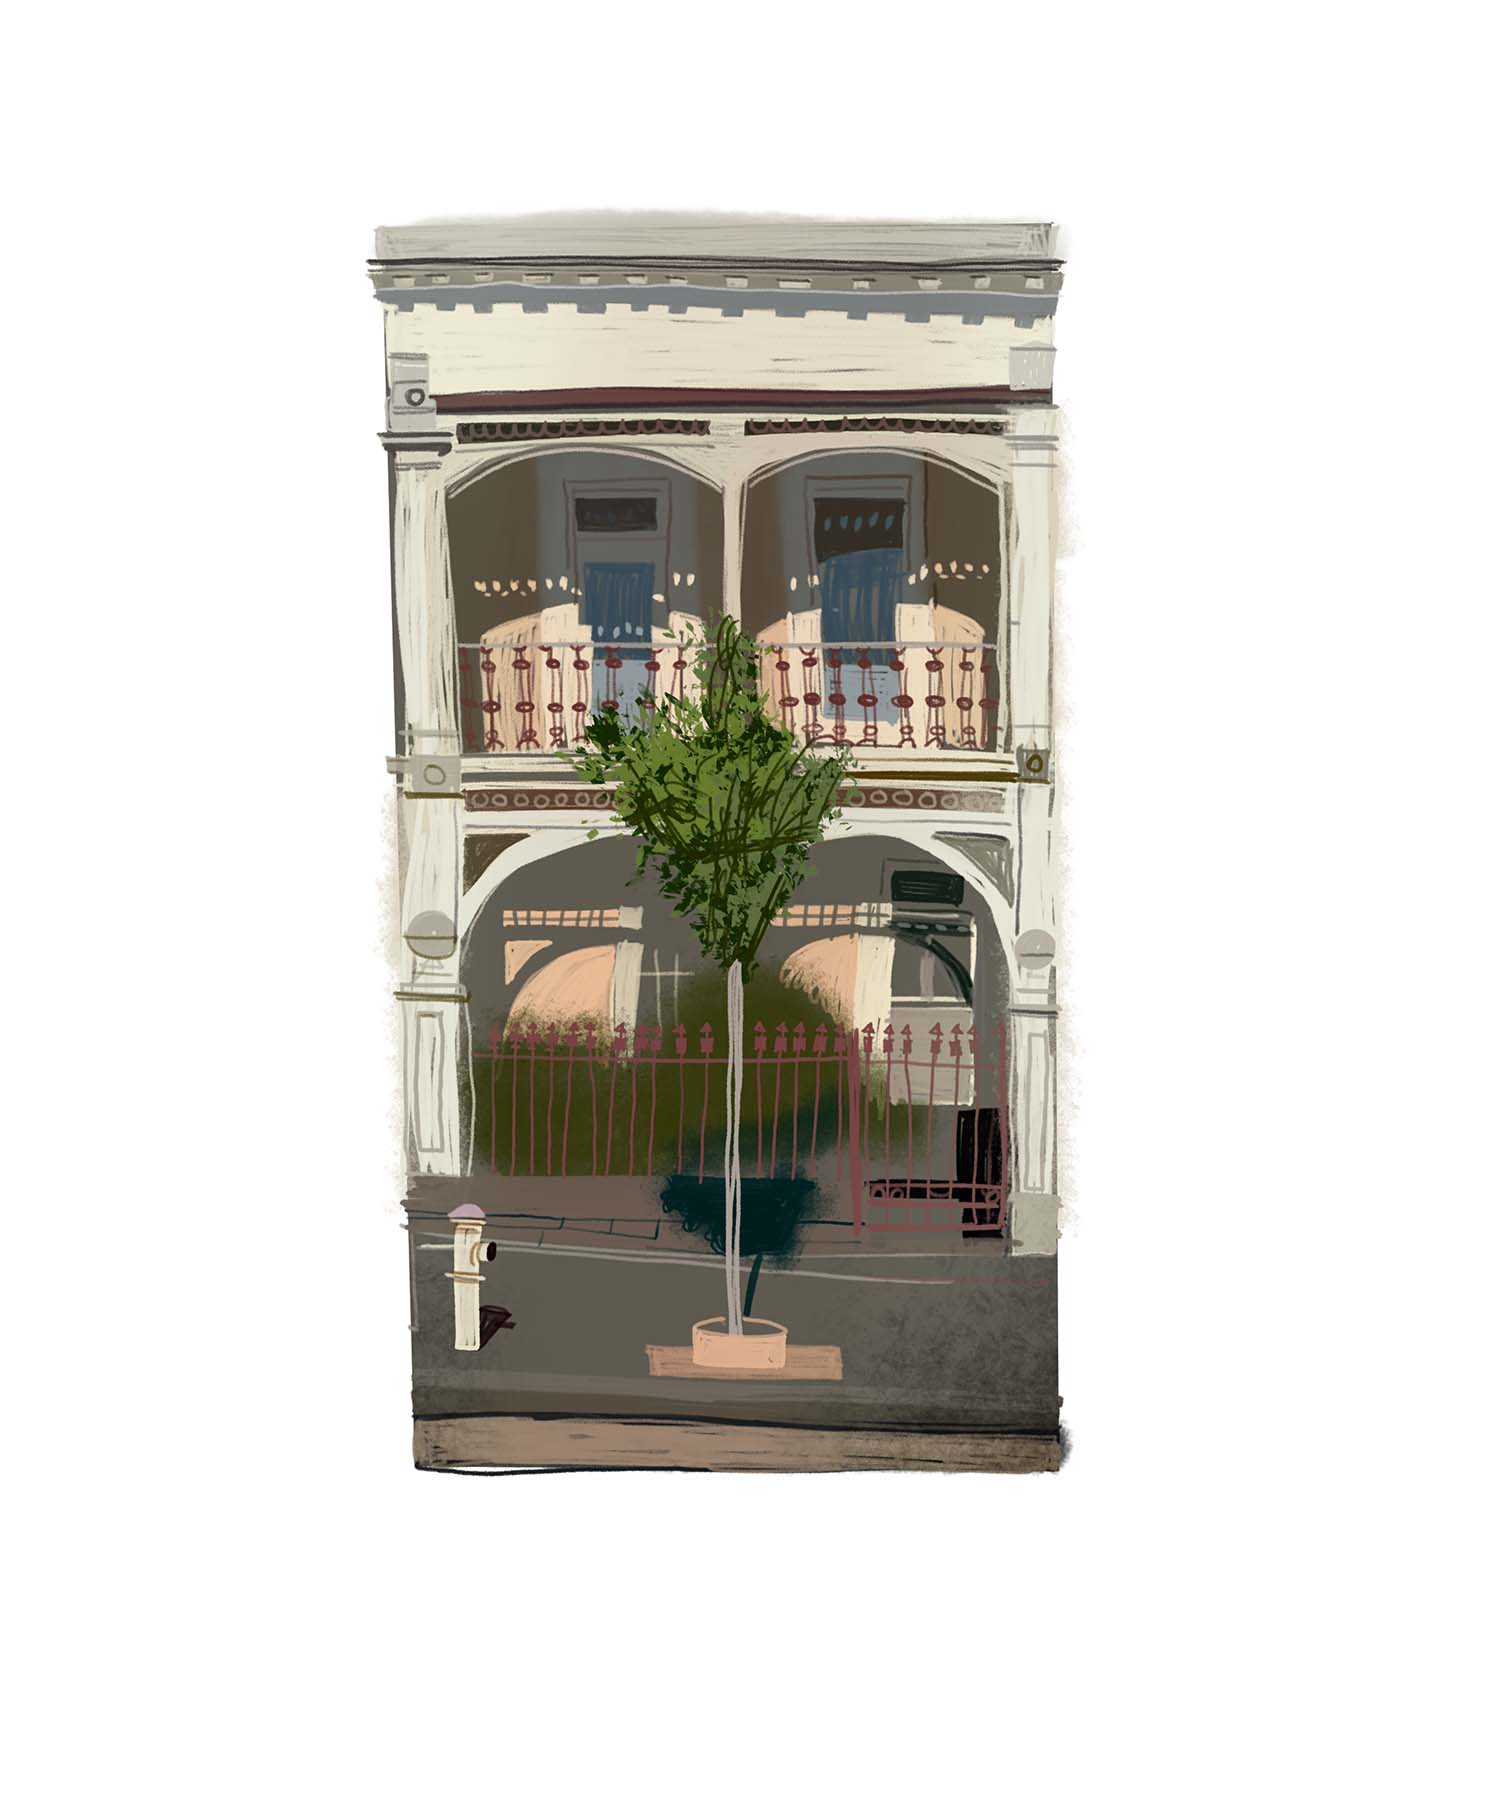 House in East Melbourne with tree